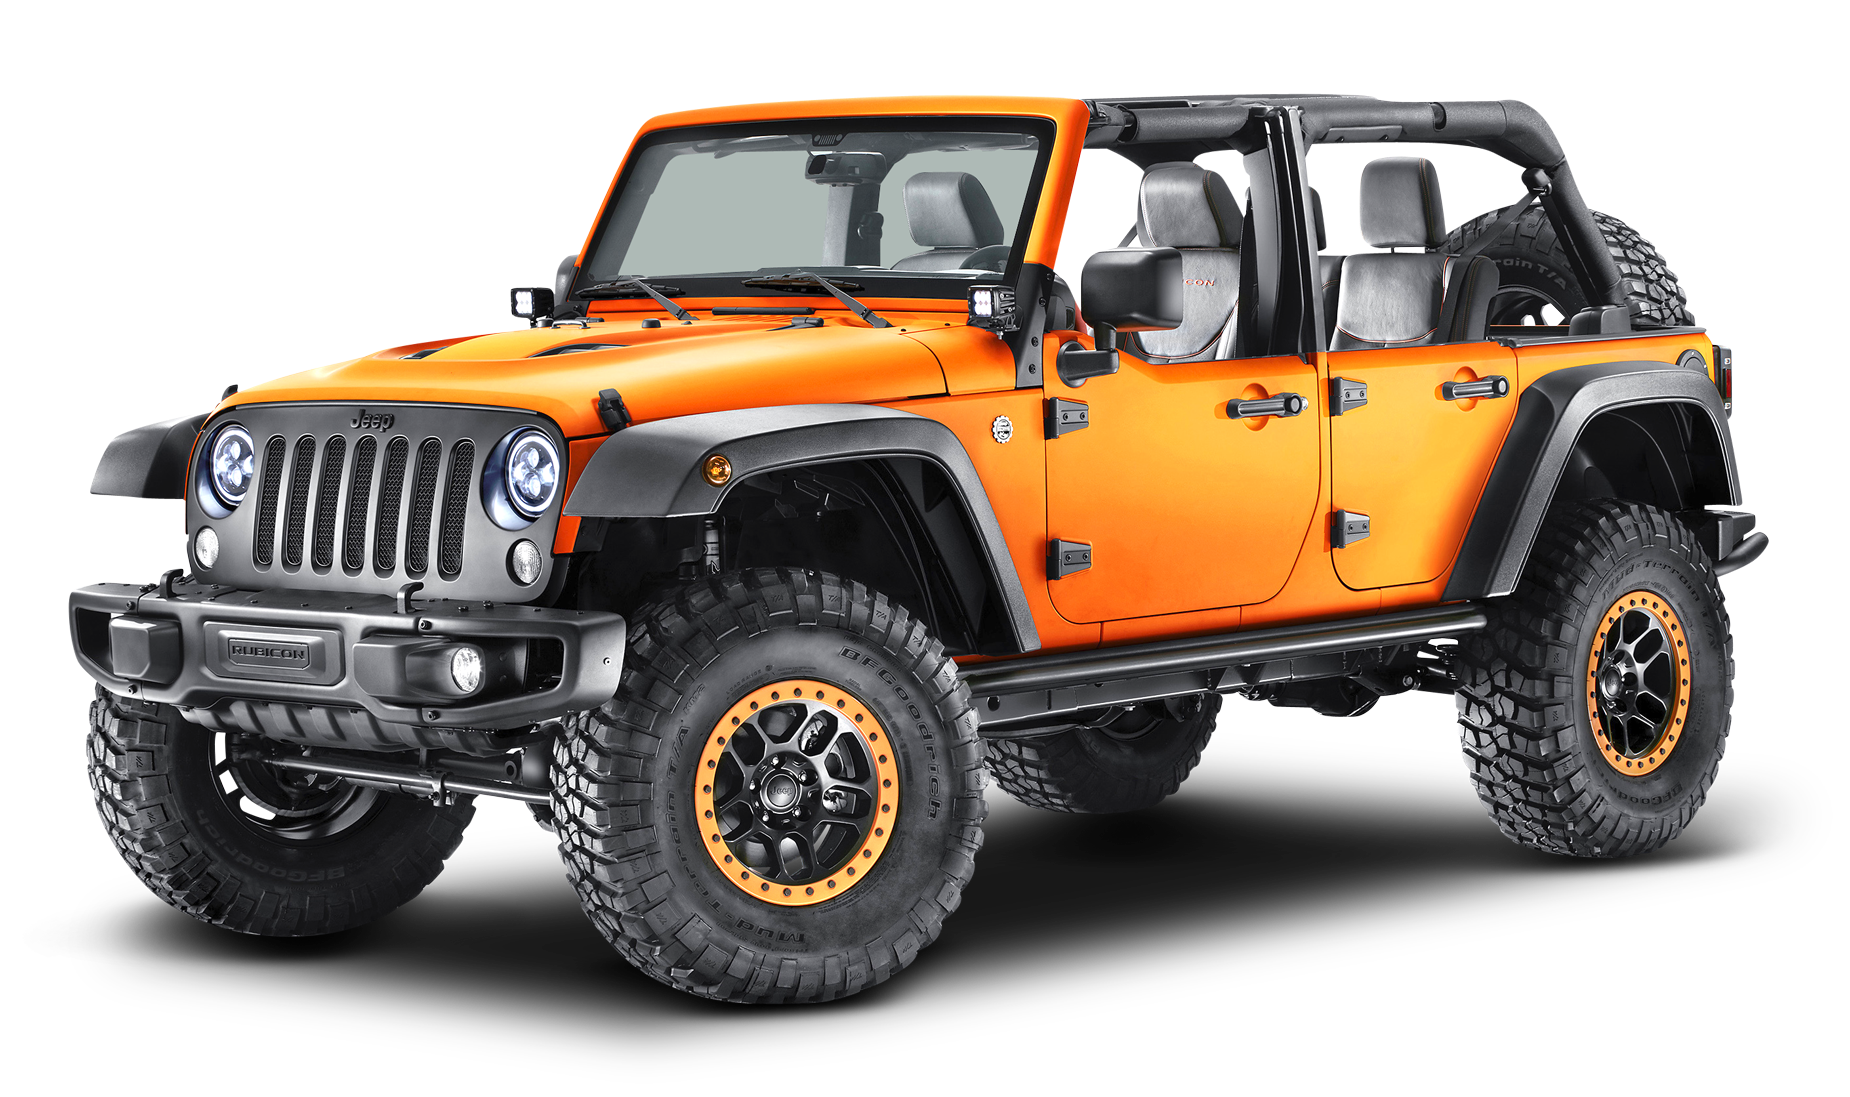 Jeep png images. Car free download